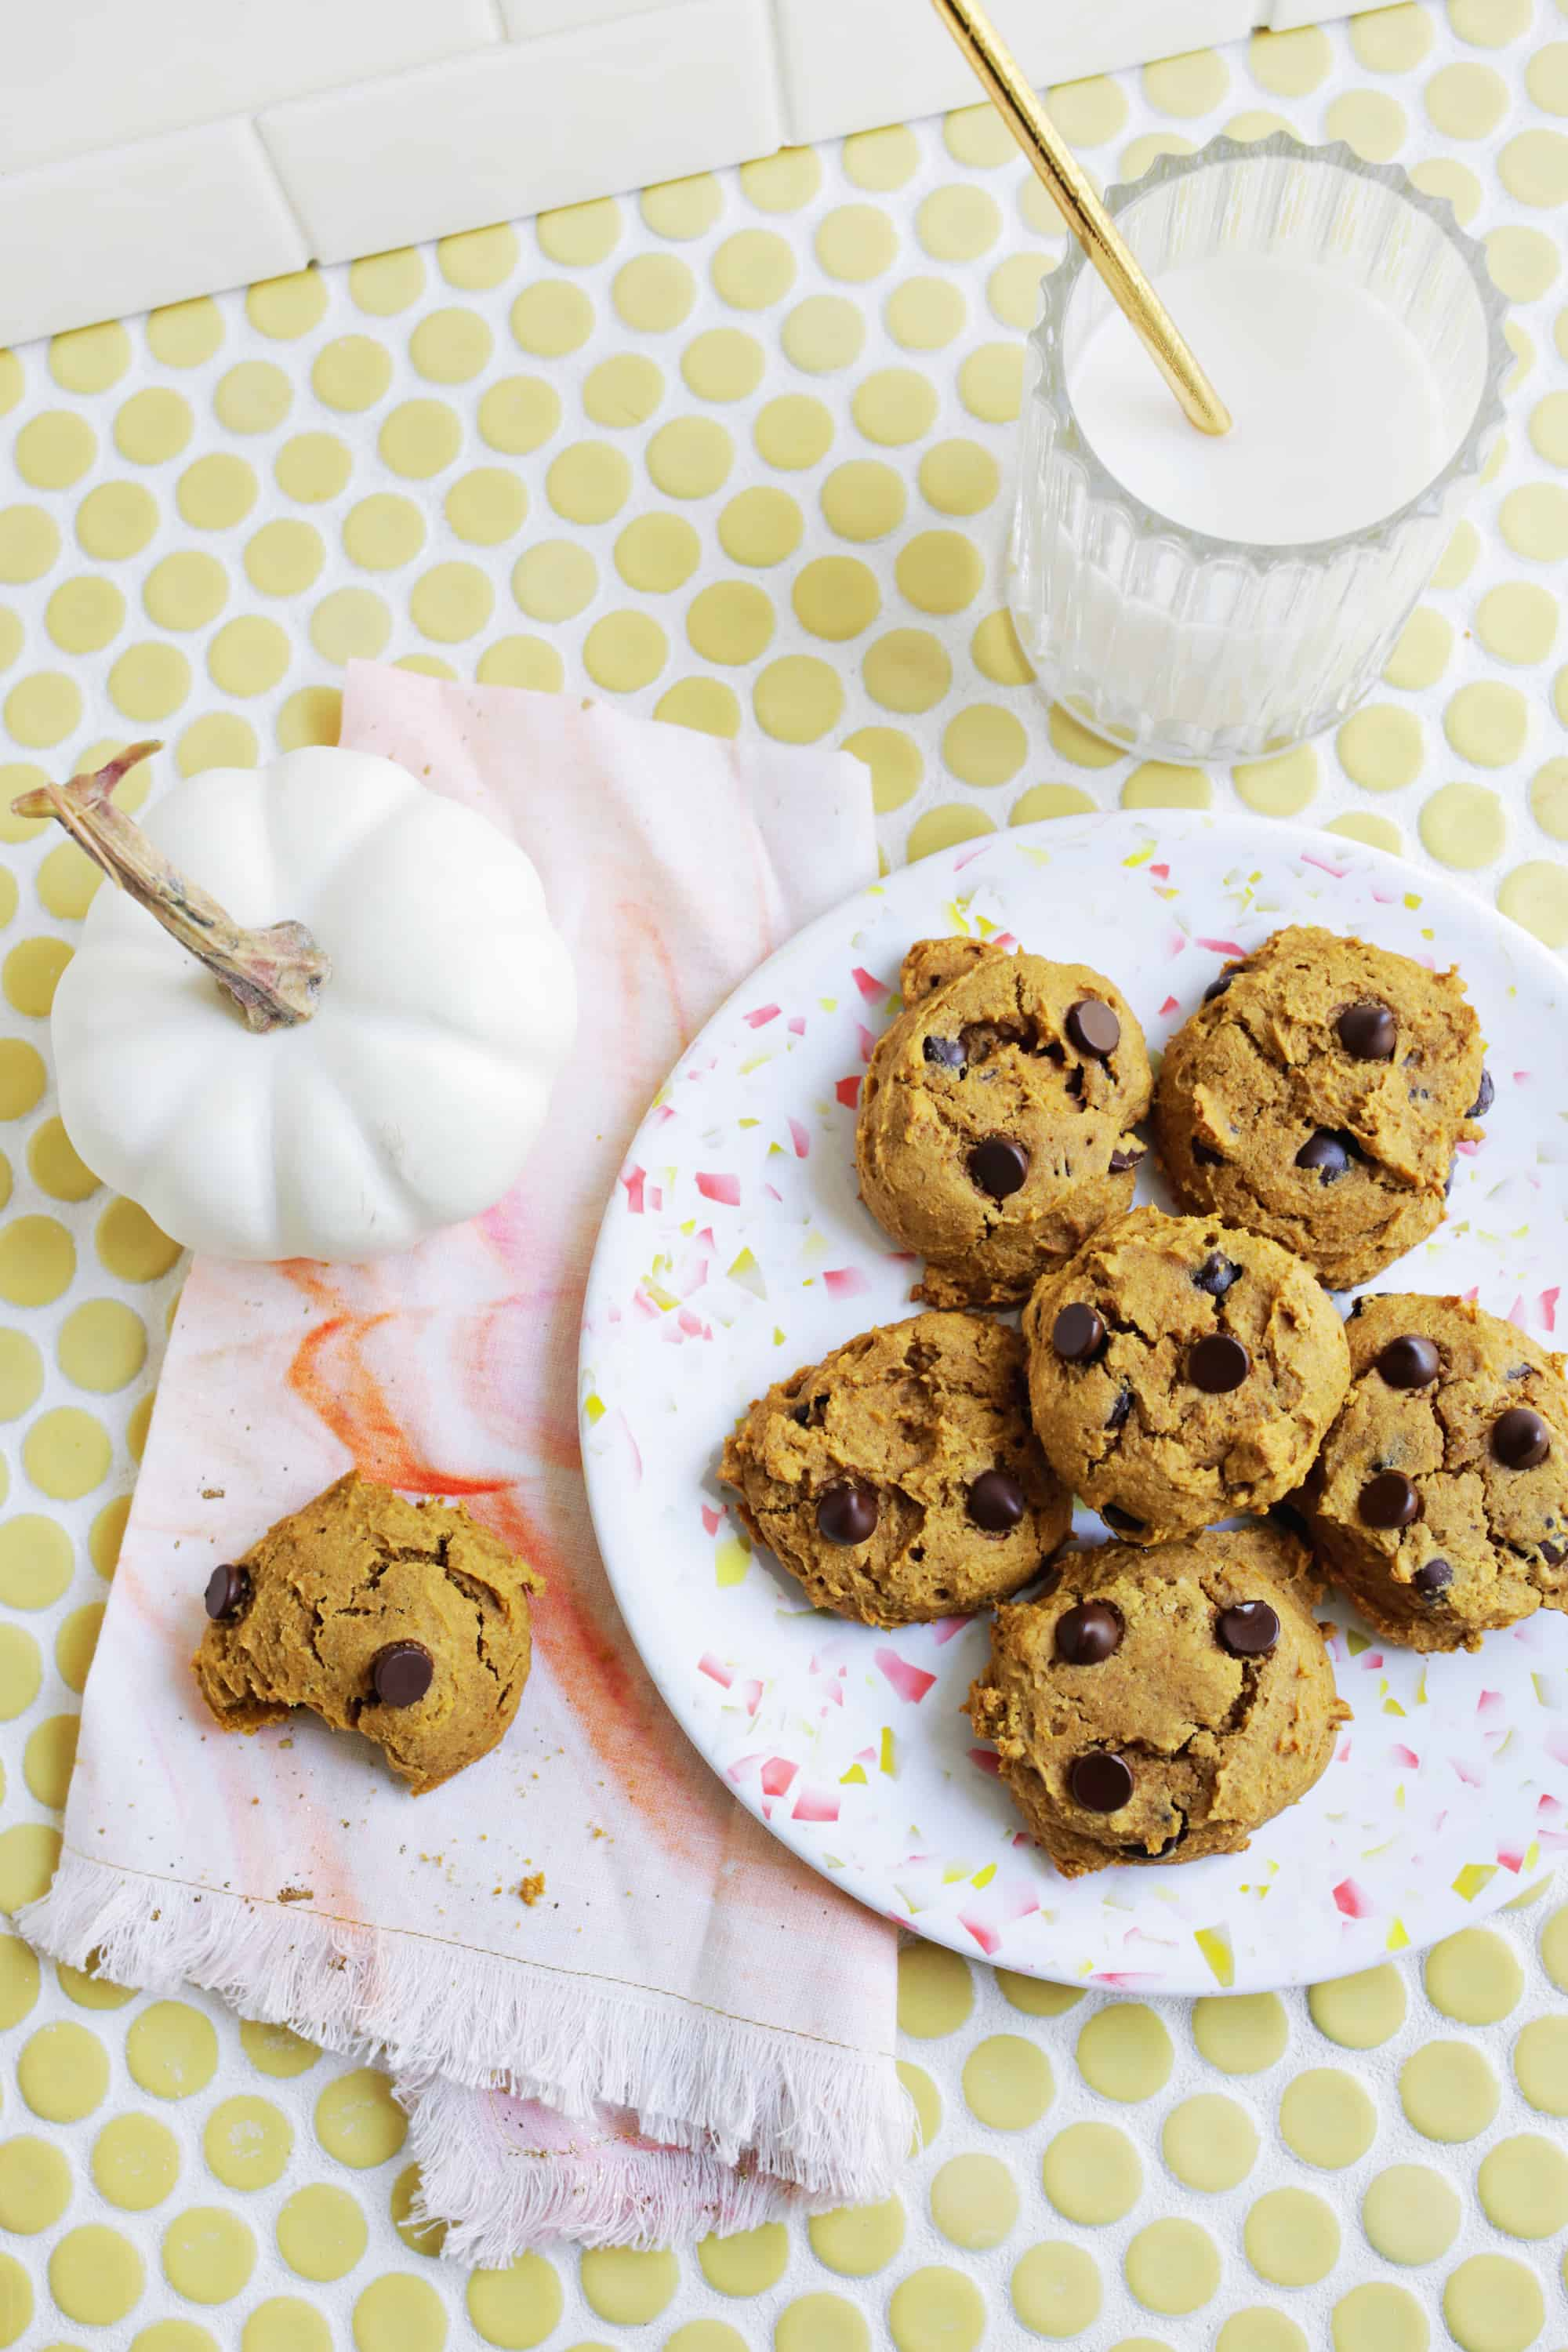 Vegan Chocolate Chip Pumpkin Cookies (also Gluten-Free!)